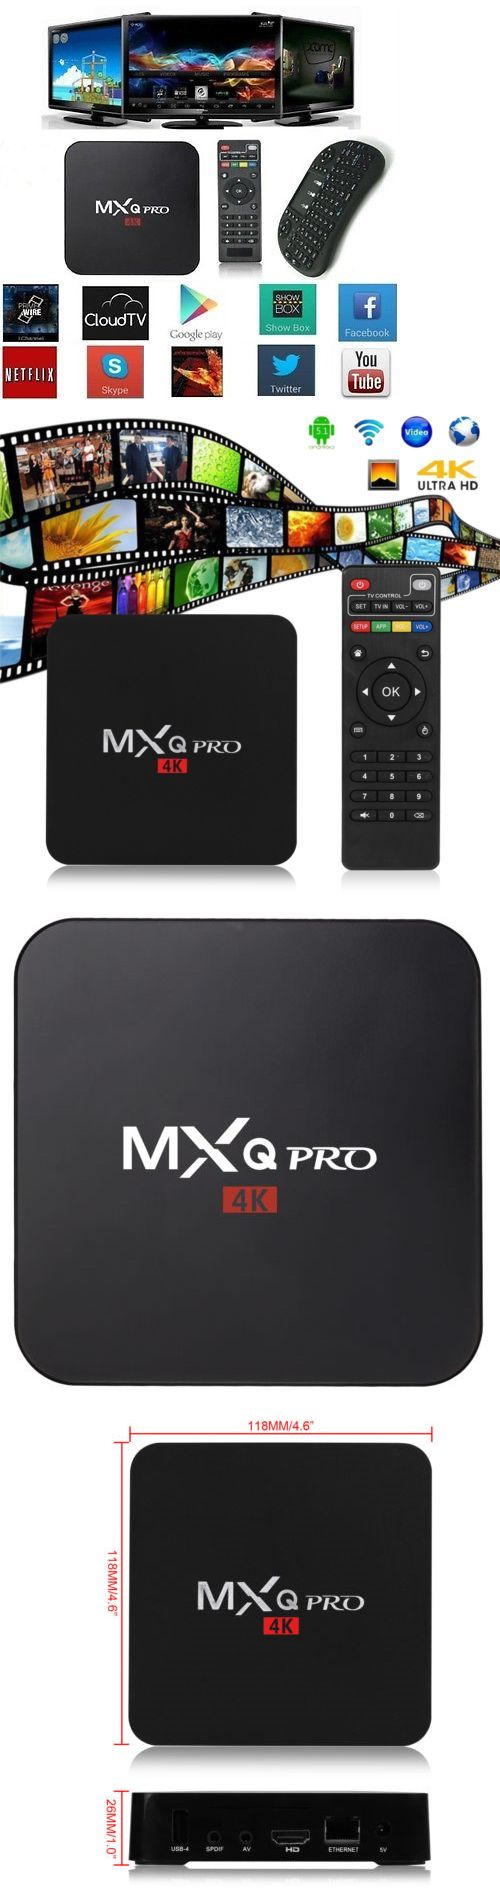 Cable TV Boxes: Mxq Pro 4K S905 Smart Tv Box 64Bit Quad Core Android 5.1 Free Movies 1G+8G Mouse -> BUY IT NOW ONLY: $45.43 on eBay!